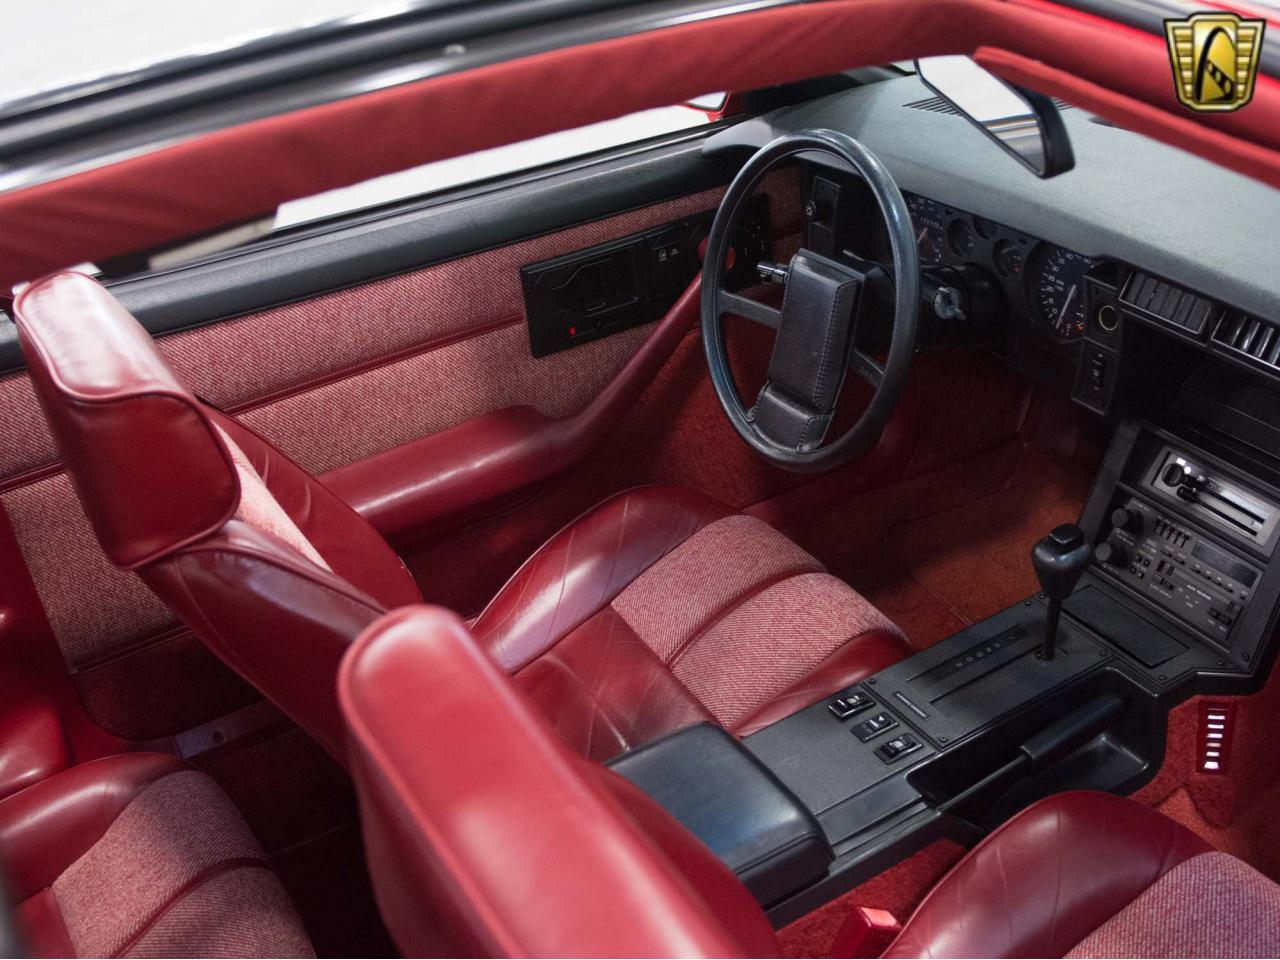 Large Picture of 1989 Chevrolet Camaro located in Wisconsin - $17,995.00 Offered by Gateway Classic Cars - Milwaukee - KE4I